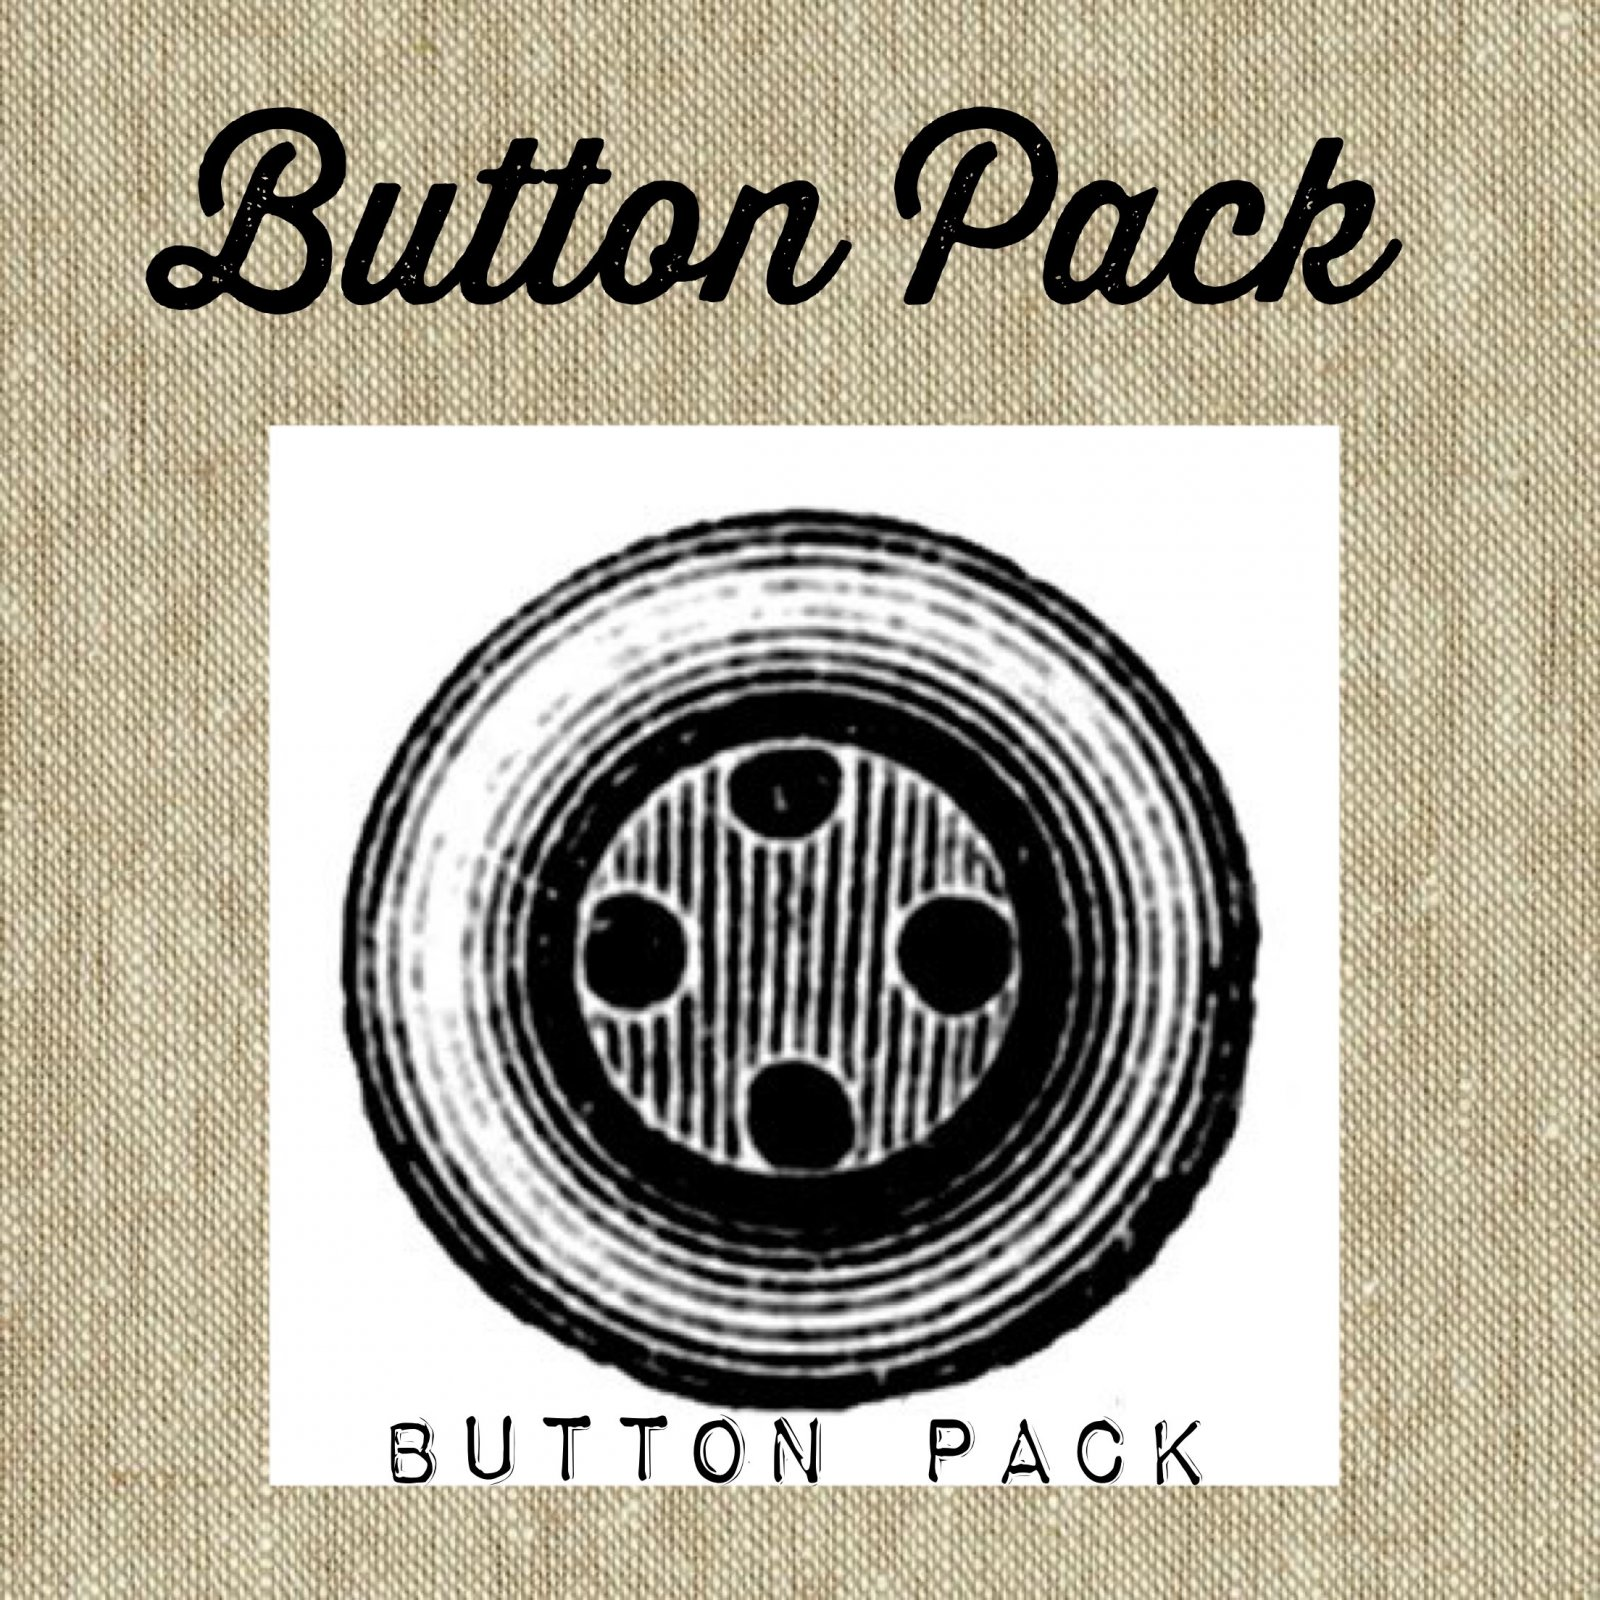 Buttermilk Basin's Vintage Vibe * Easter Delivery Button Pack